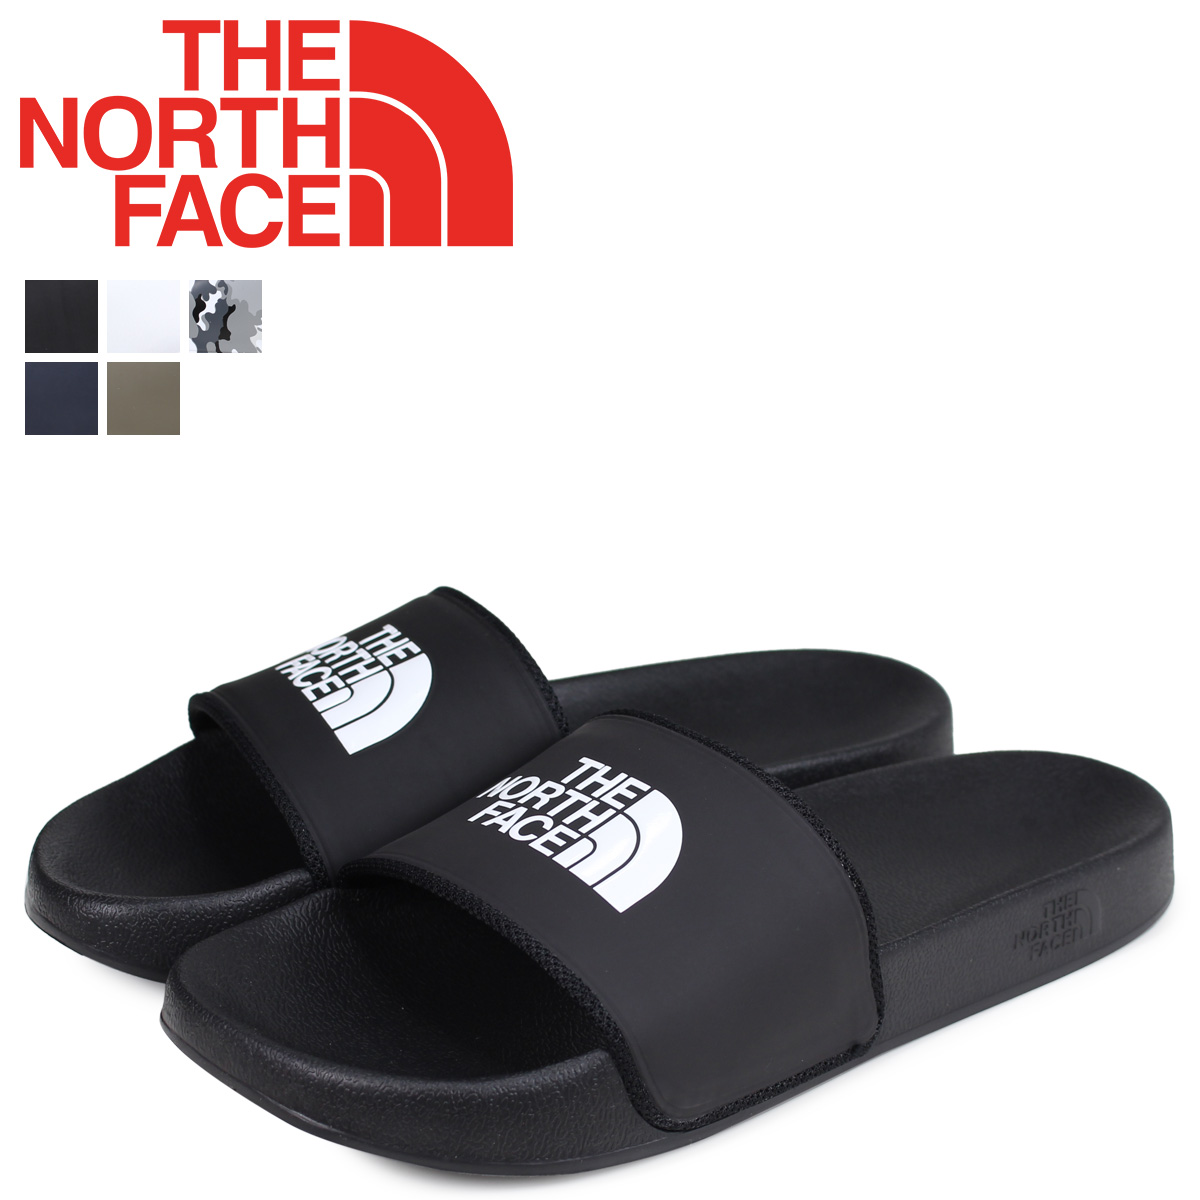 2632c0002 THE NORTH FACE North Face base camp sandals slide sandals men MENS BASE  CAMP SLIDE 2 NF0A3FWO